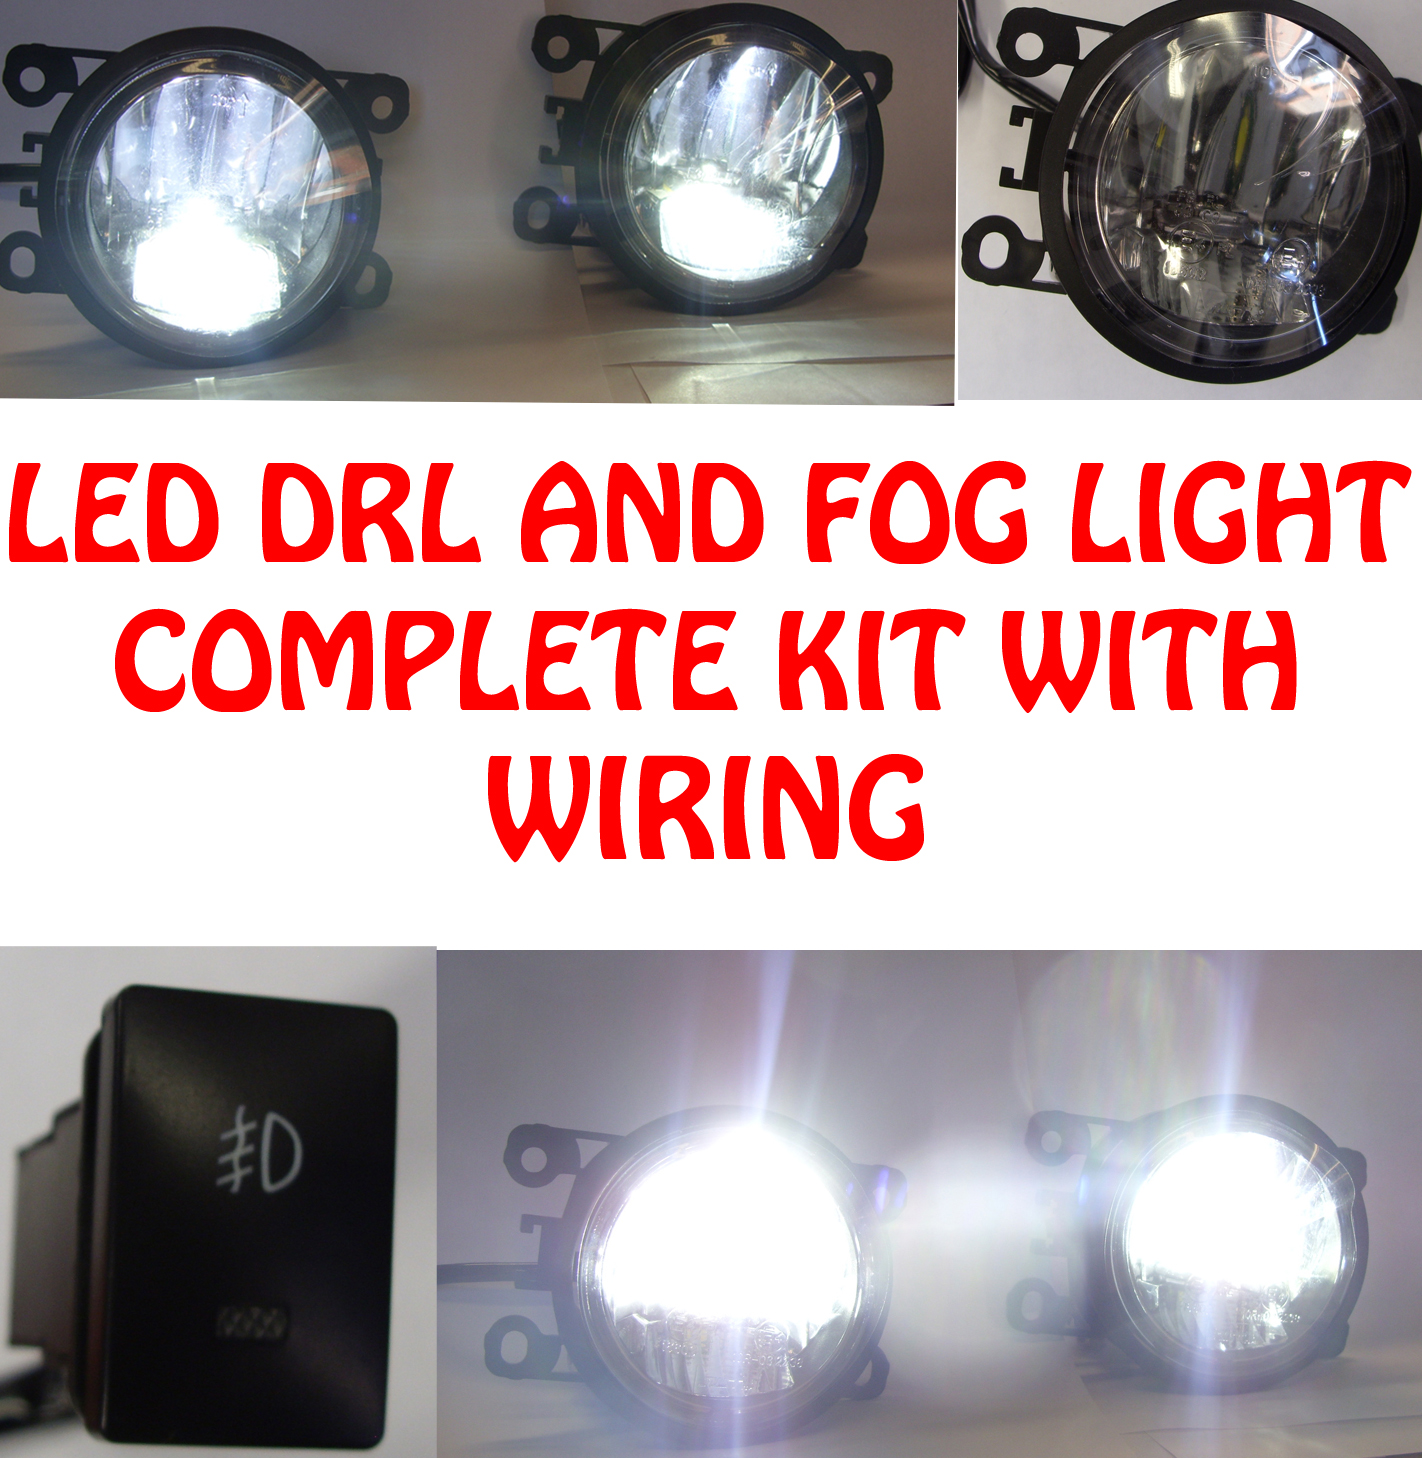 Suzuki Fog Lights Wiring Diagram : High power led drl and fog lights with wiring switch